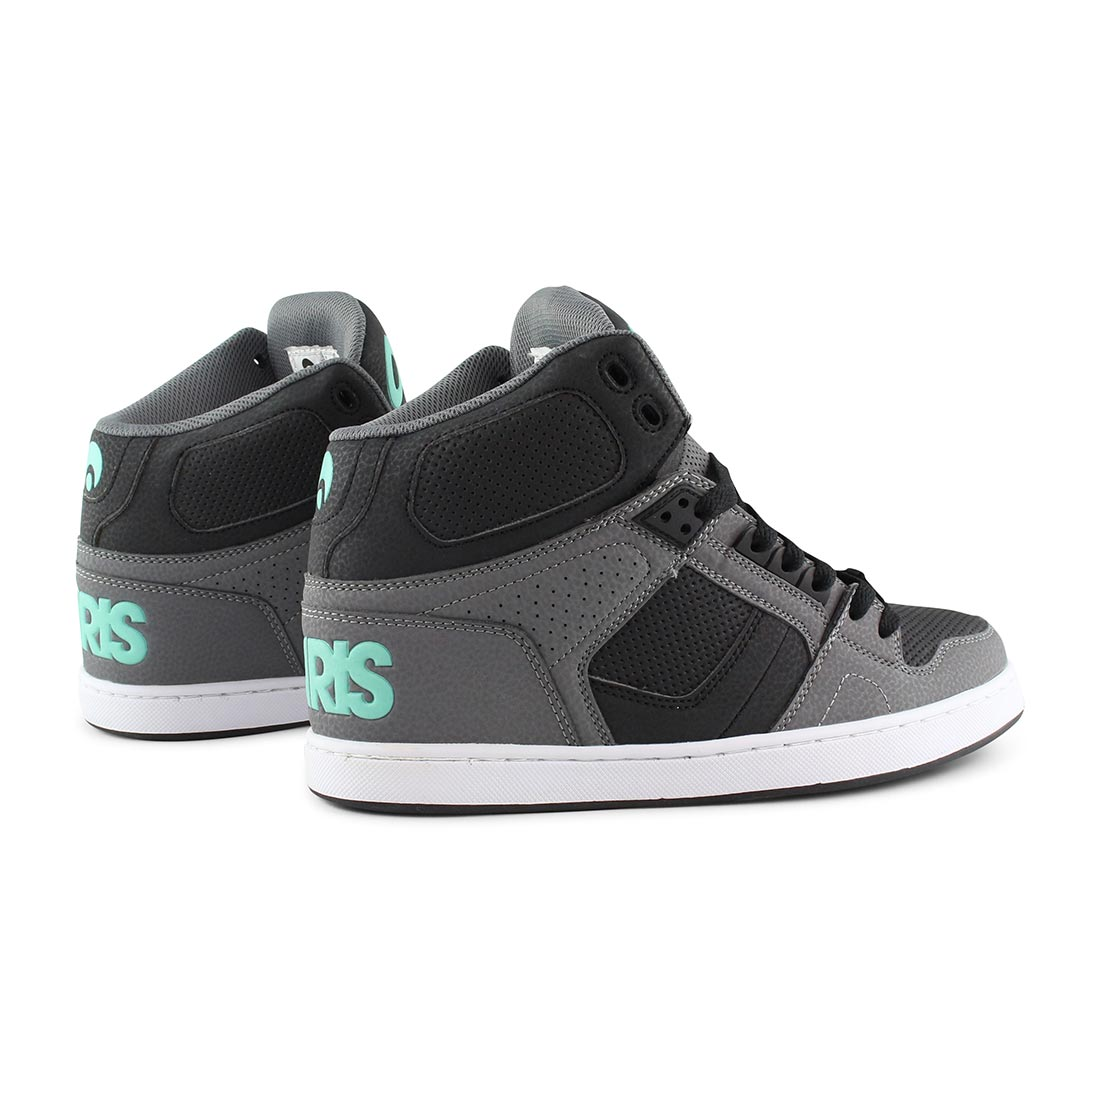 Osiris NYC 83 CLK High Top Shoes - Grey / Black / Opal